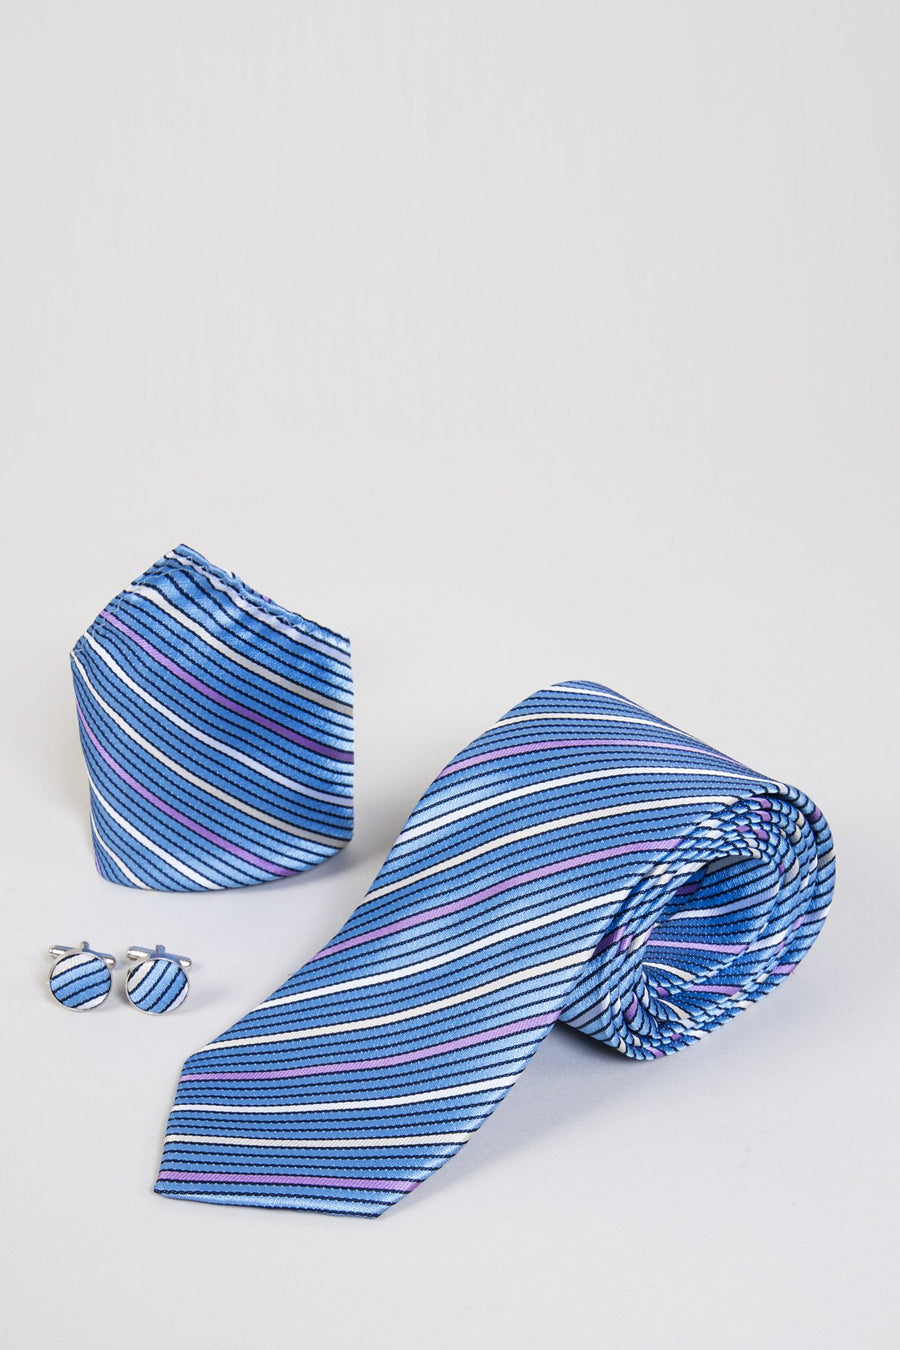 TB16 Sky Blue Stripe Print Tie, Cufflink & Pocket Square - Wedding Suit Direct